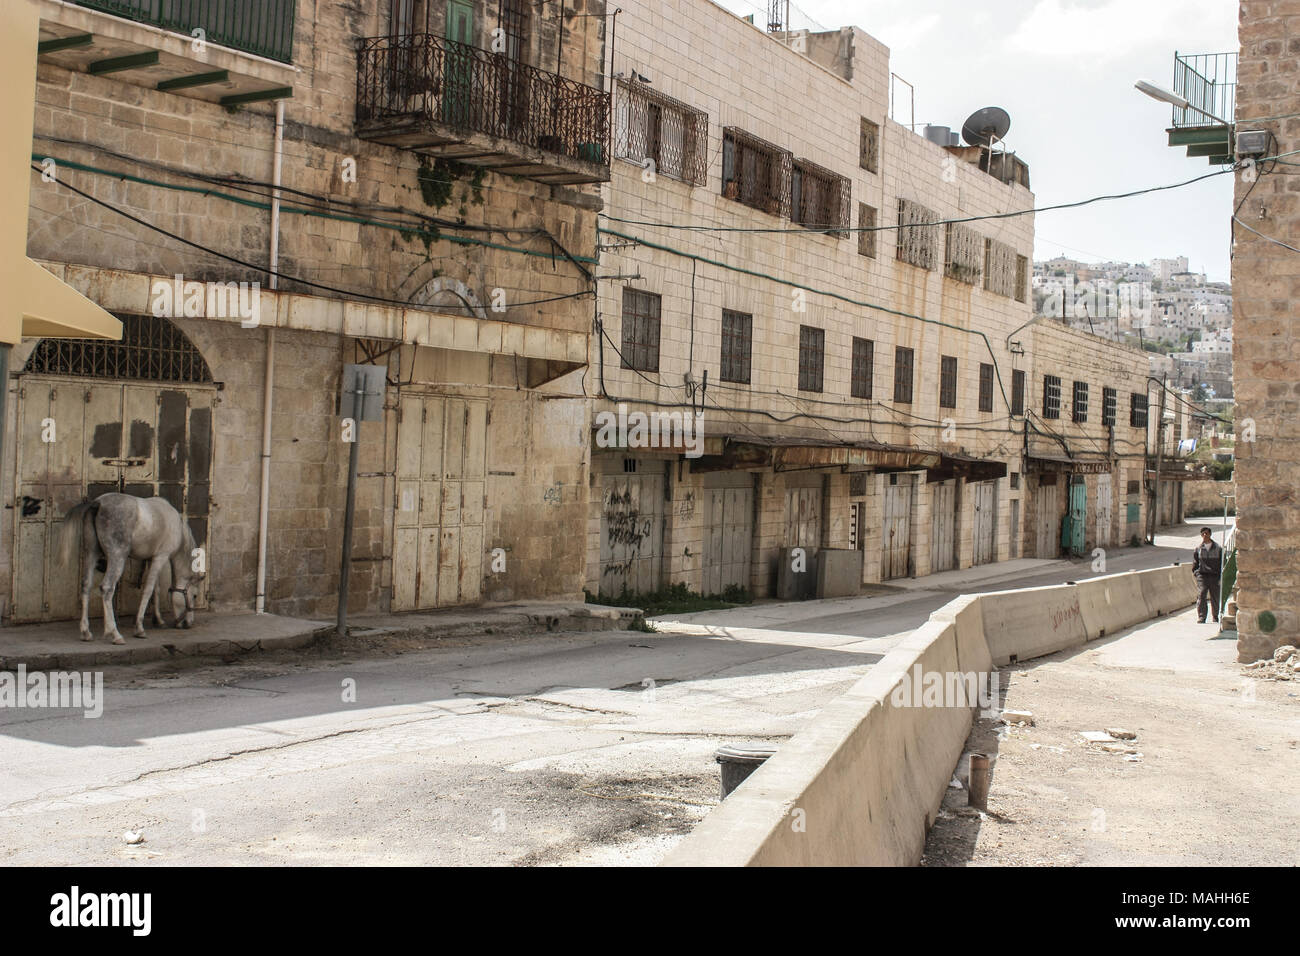 Abandoned Street of the city of Hebron in the occupied Palestinian territory with a horse on the side - Stock Image